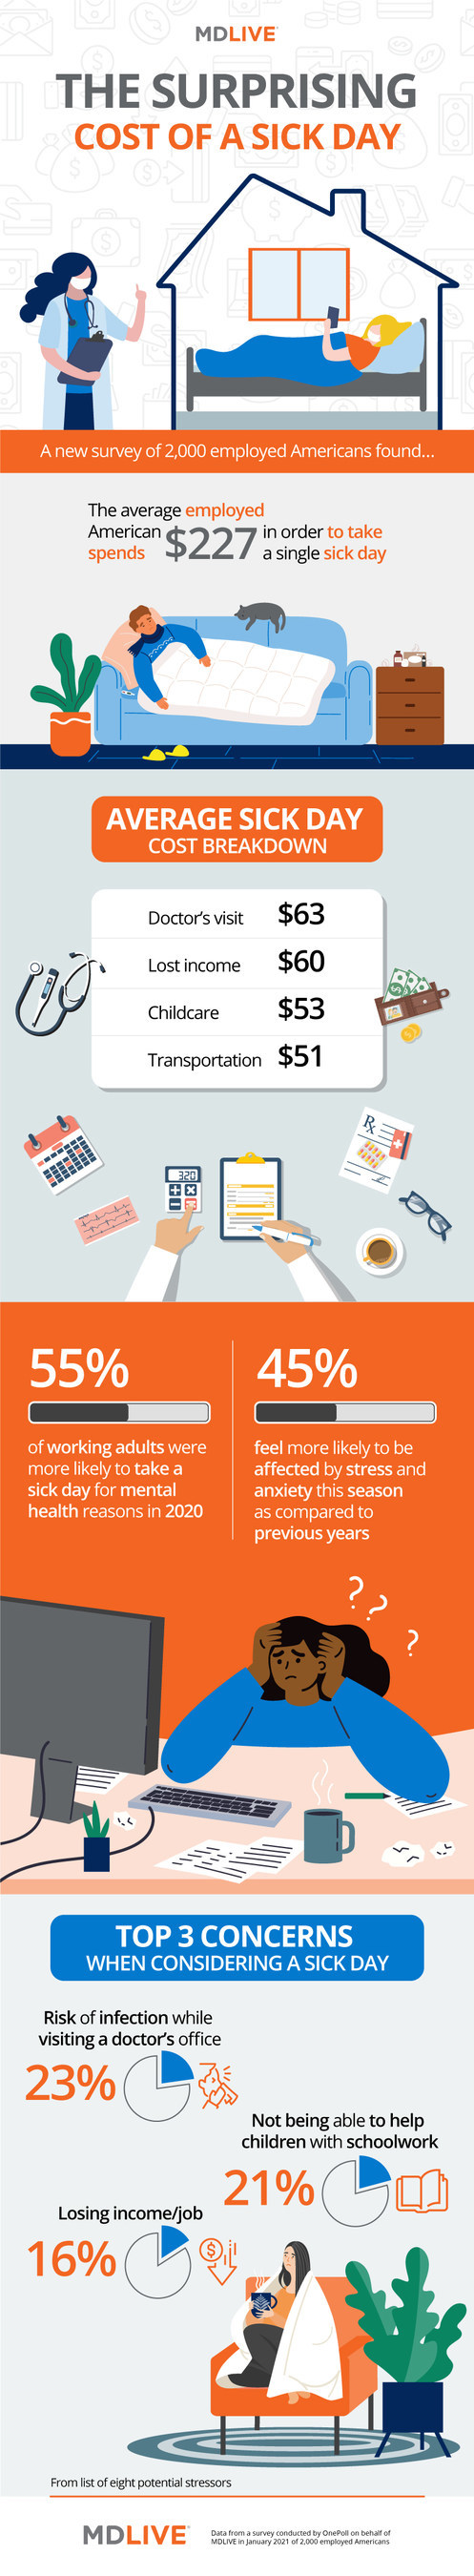 The price of a sick day infographic.